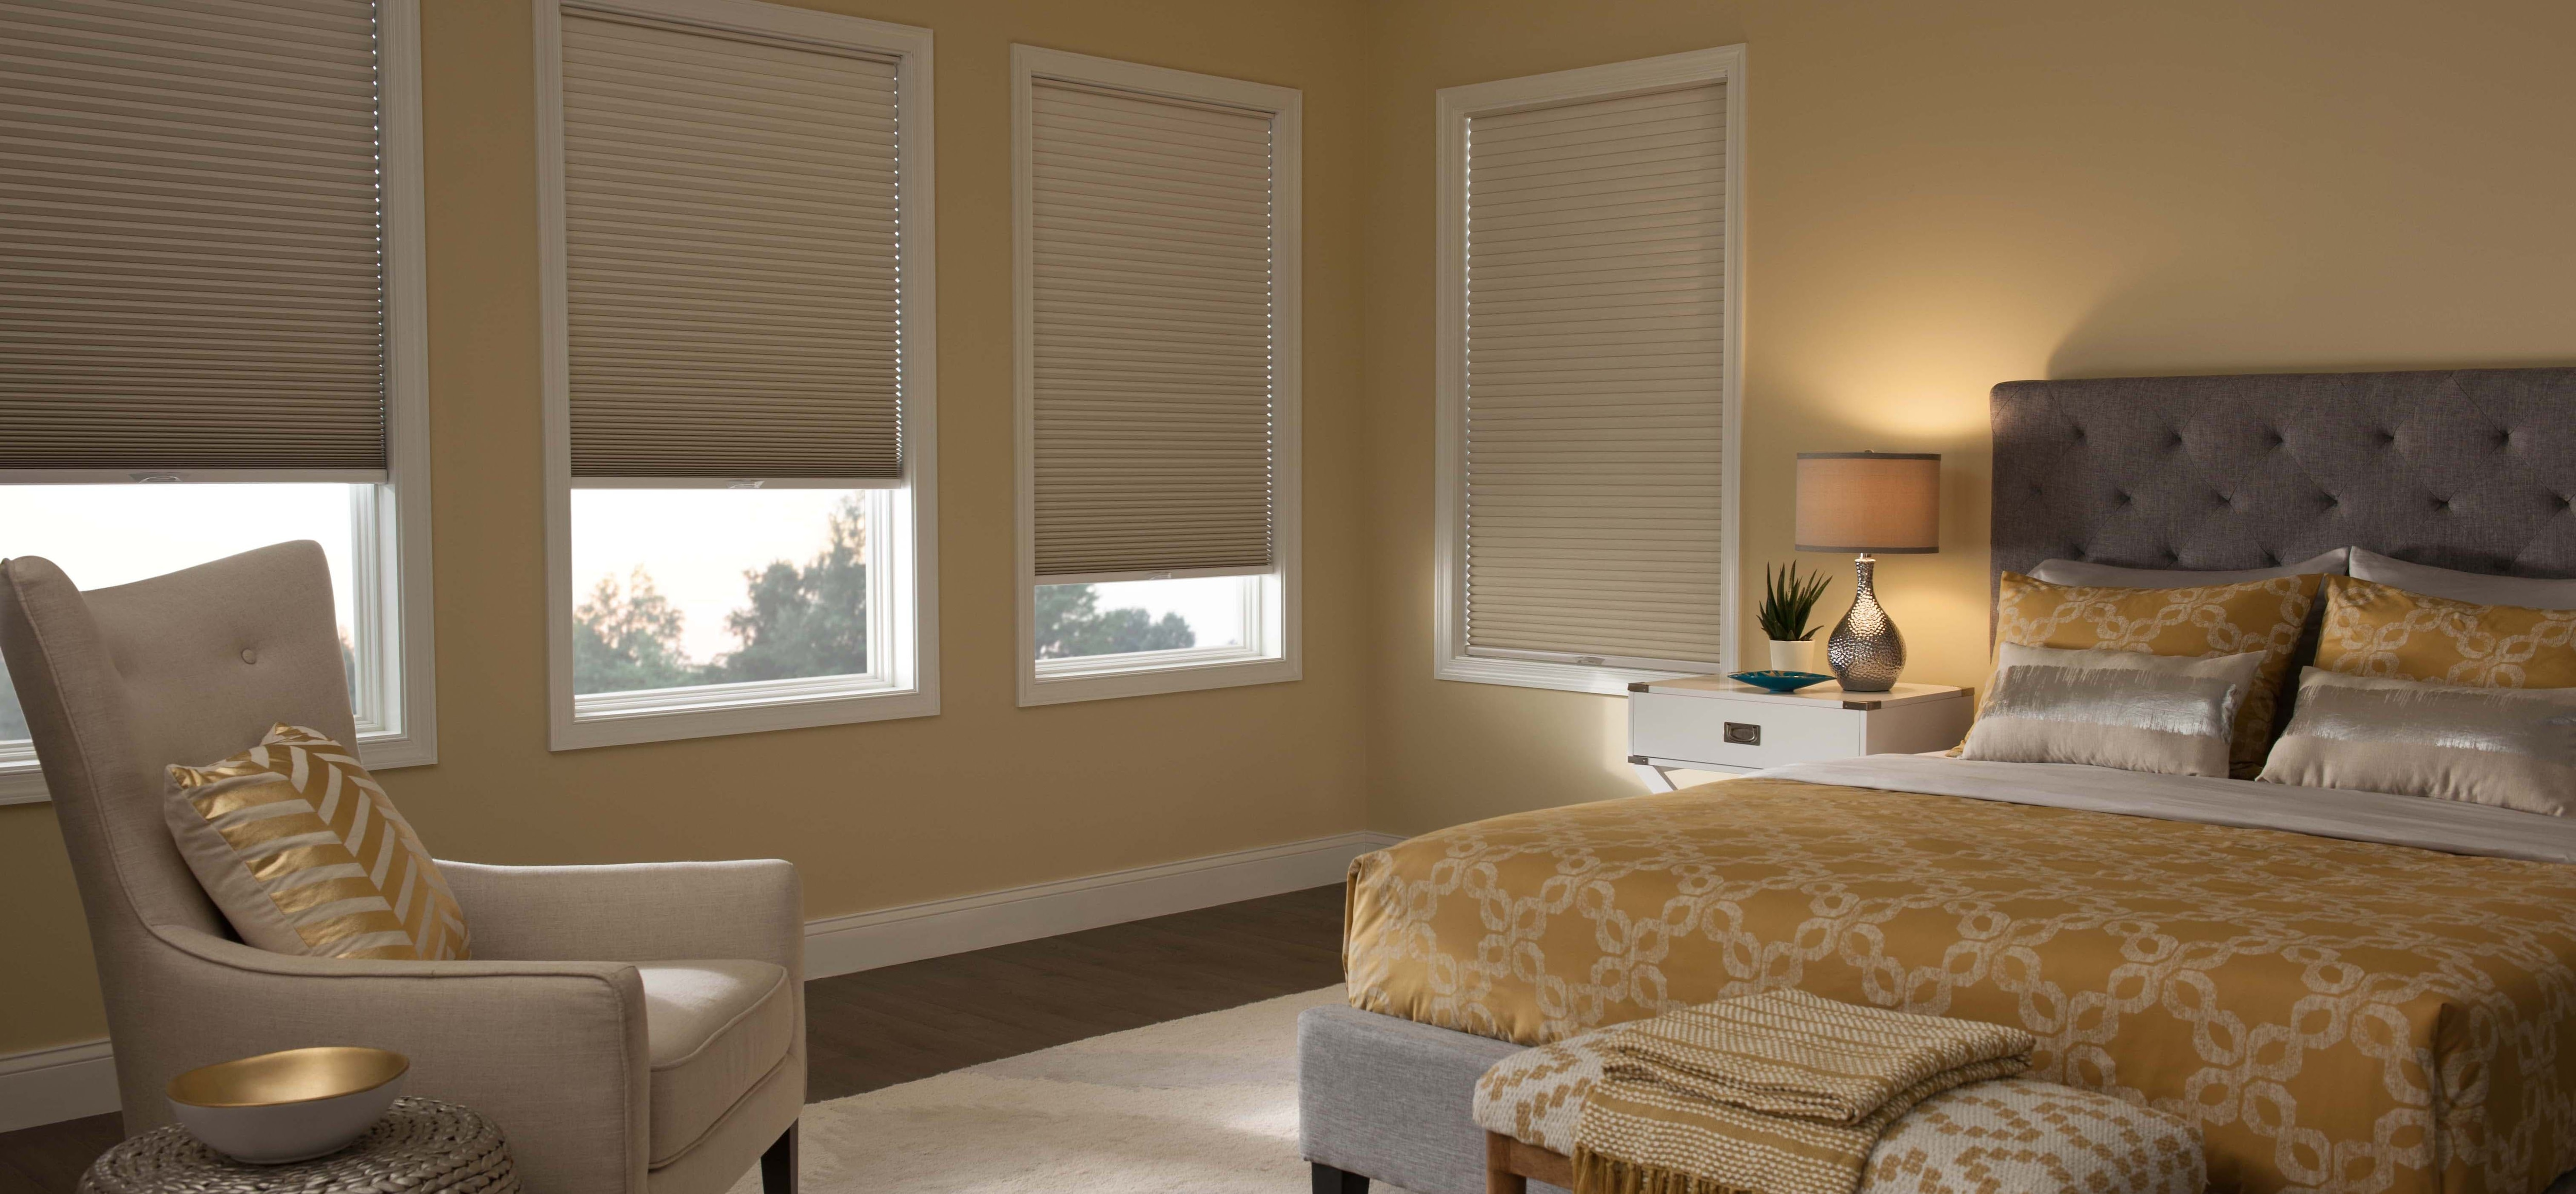 cellular finishing room the norman blog tag blinds lock cordless touch lift shades and new